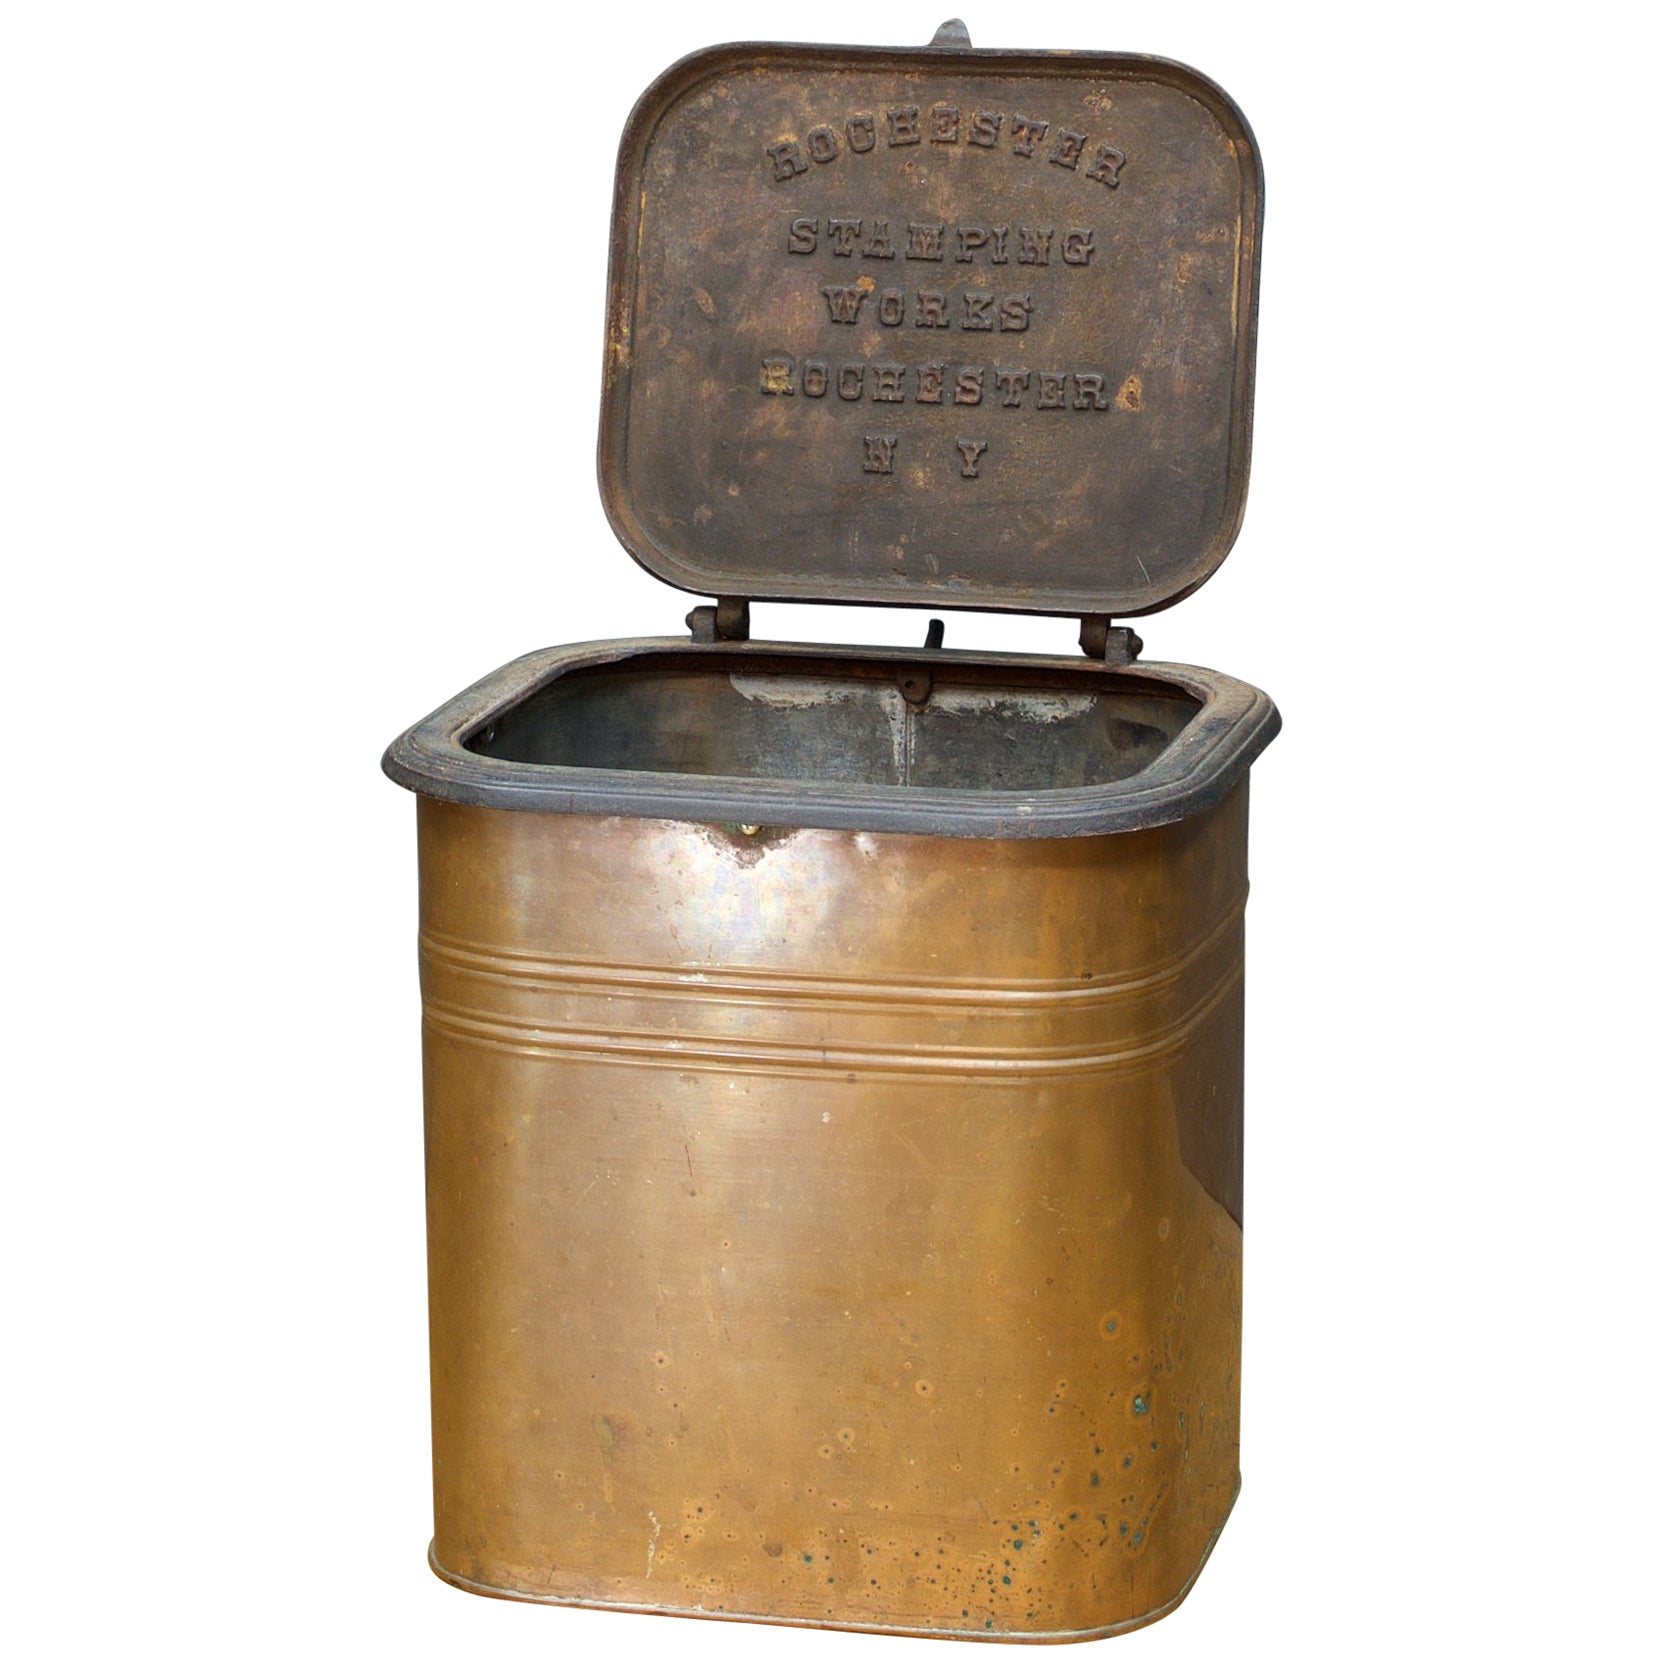 Copper Trash Can With Lid 1880s Rochester Stamping Works Copper Coal Can Industrial Waste Trash Bin